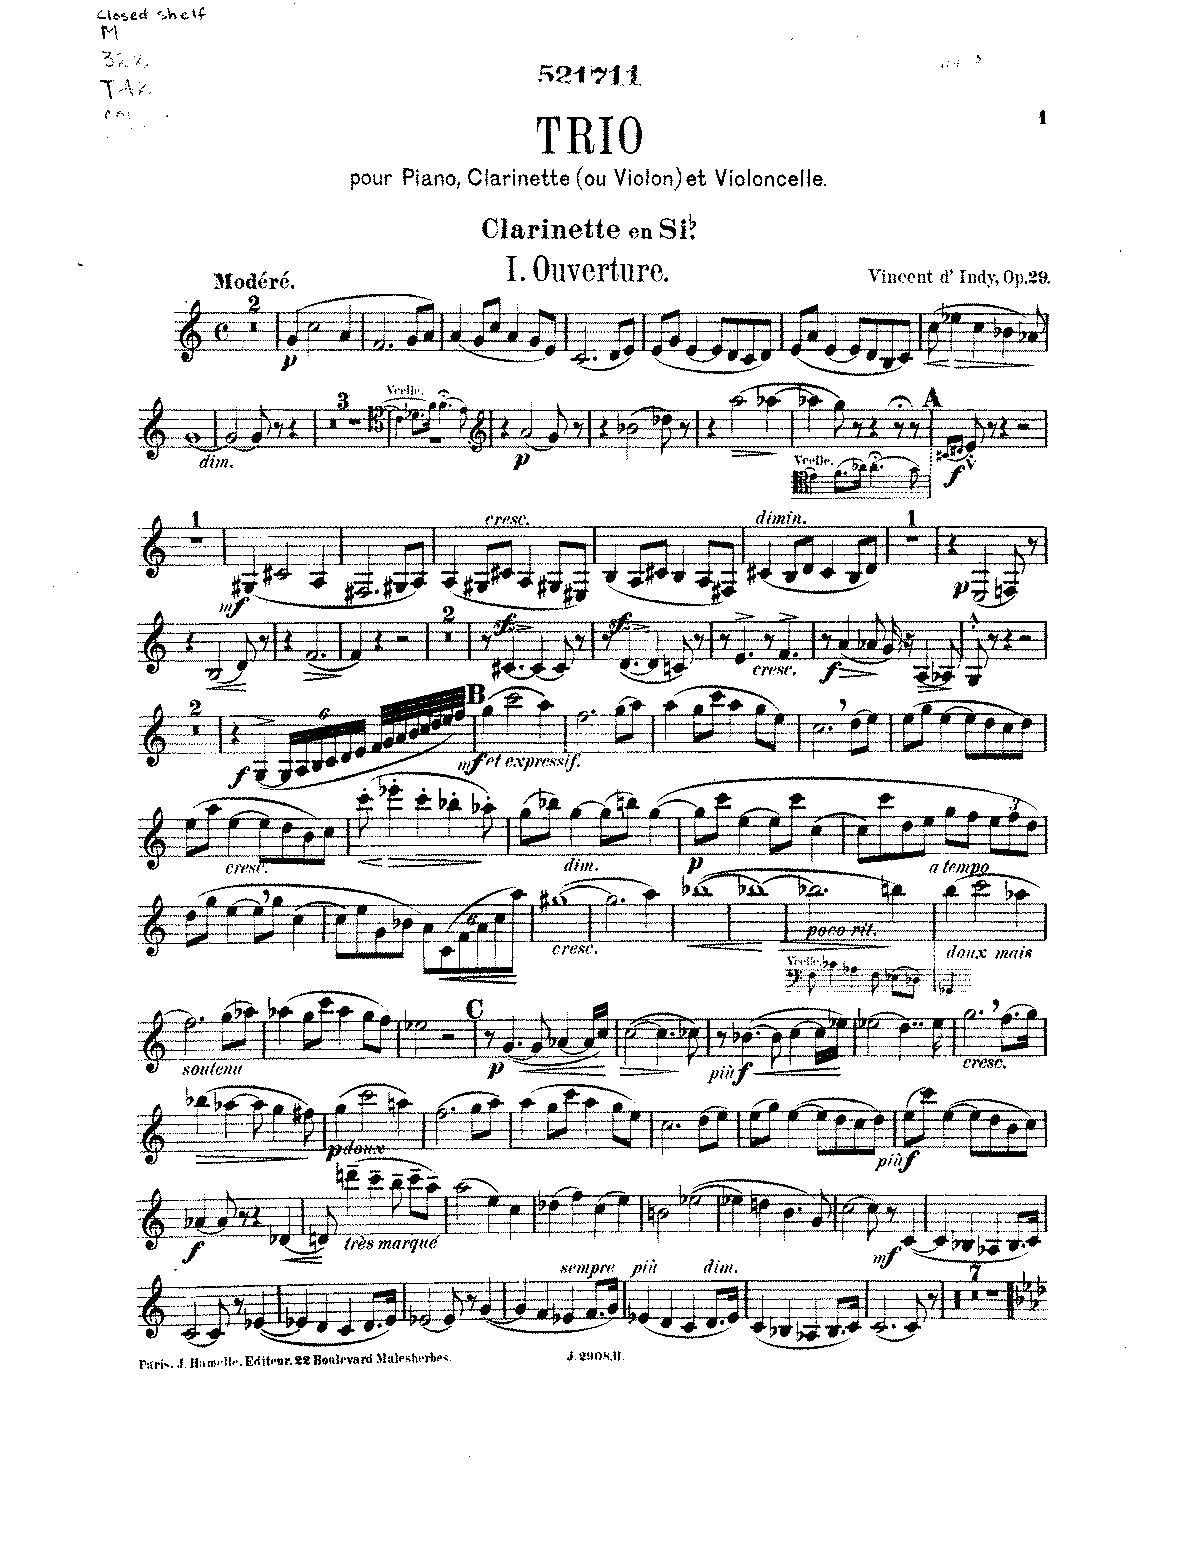 D'Indy - Trio for Piano, Clarinet, and Cello, Op. 29.pdf